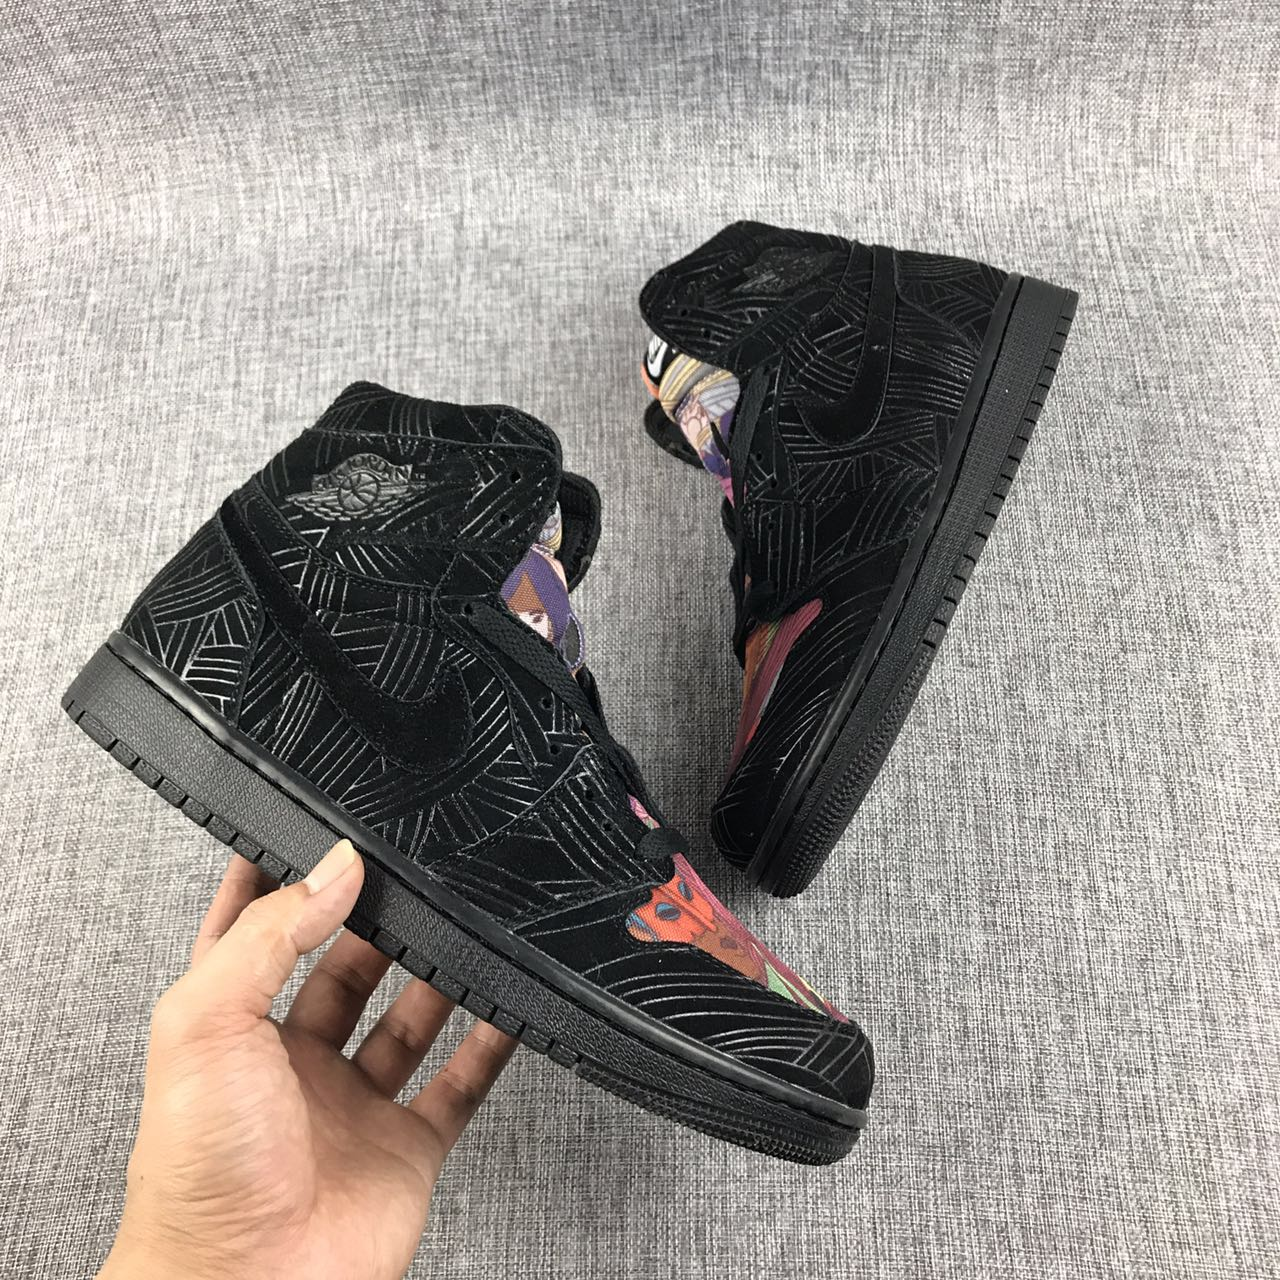 2017 Jordan 1 Laser Graffiti Black Colorful Shoes